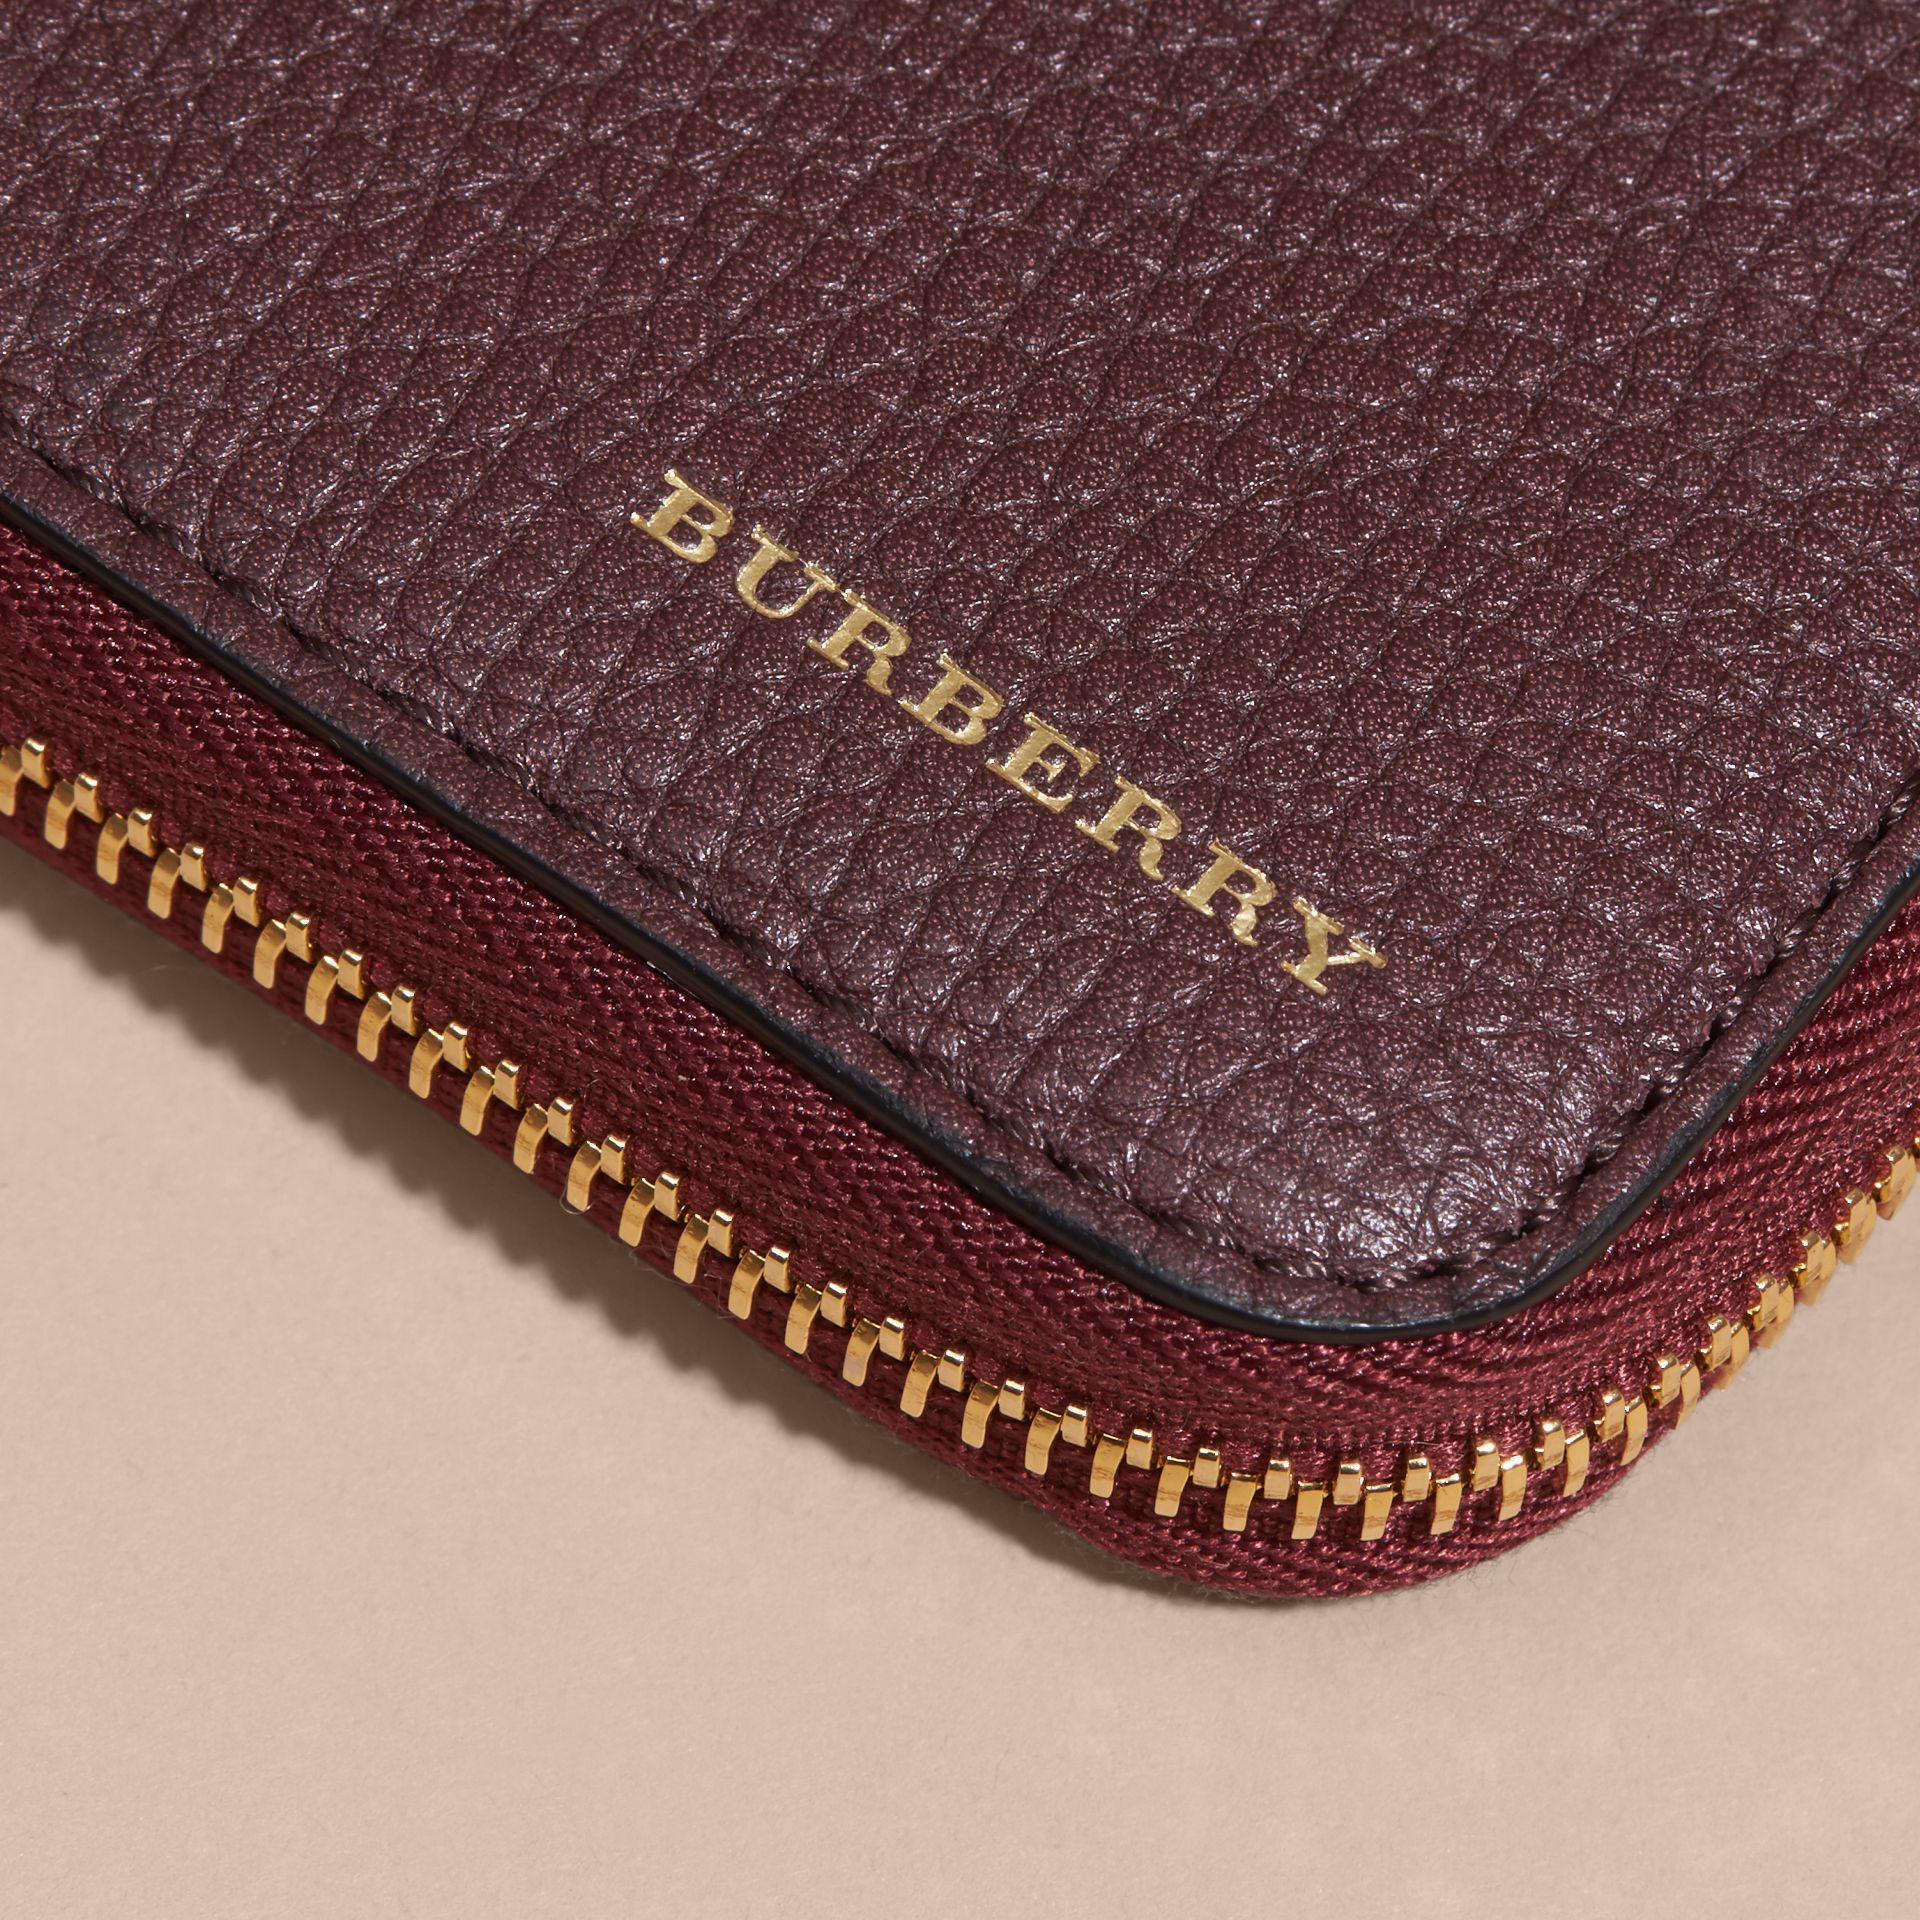 House Check and Grainy Leather Ziparound Wallet in Wine | Burberry - gallery image 4